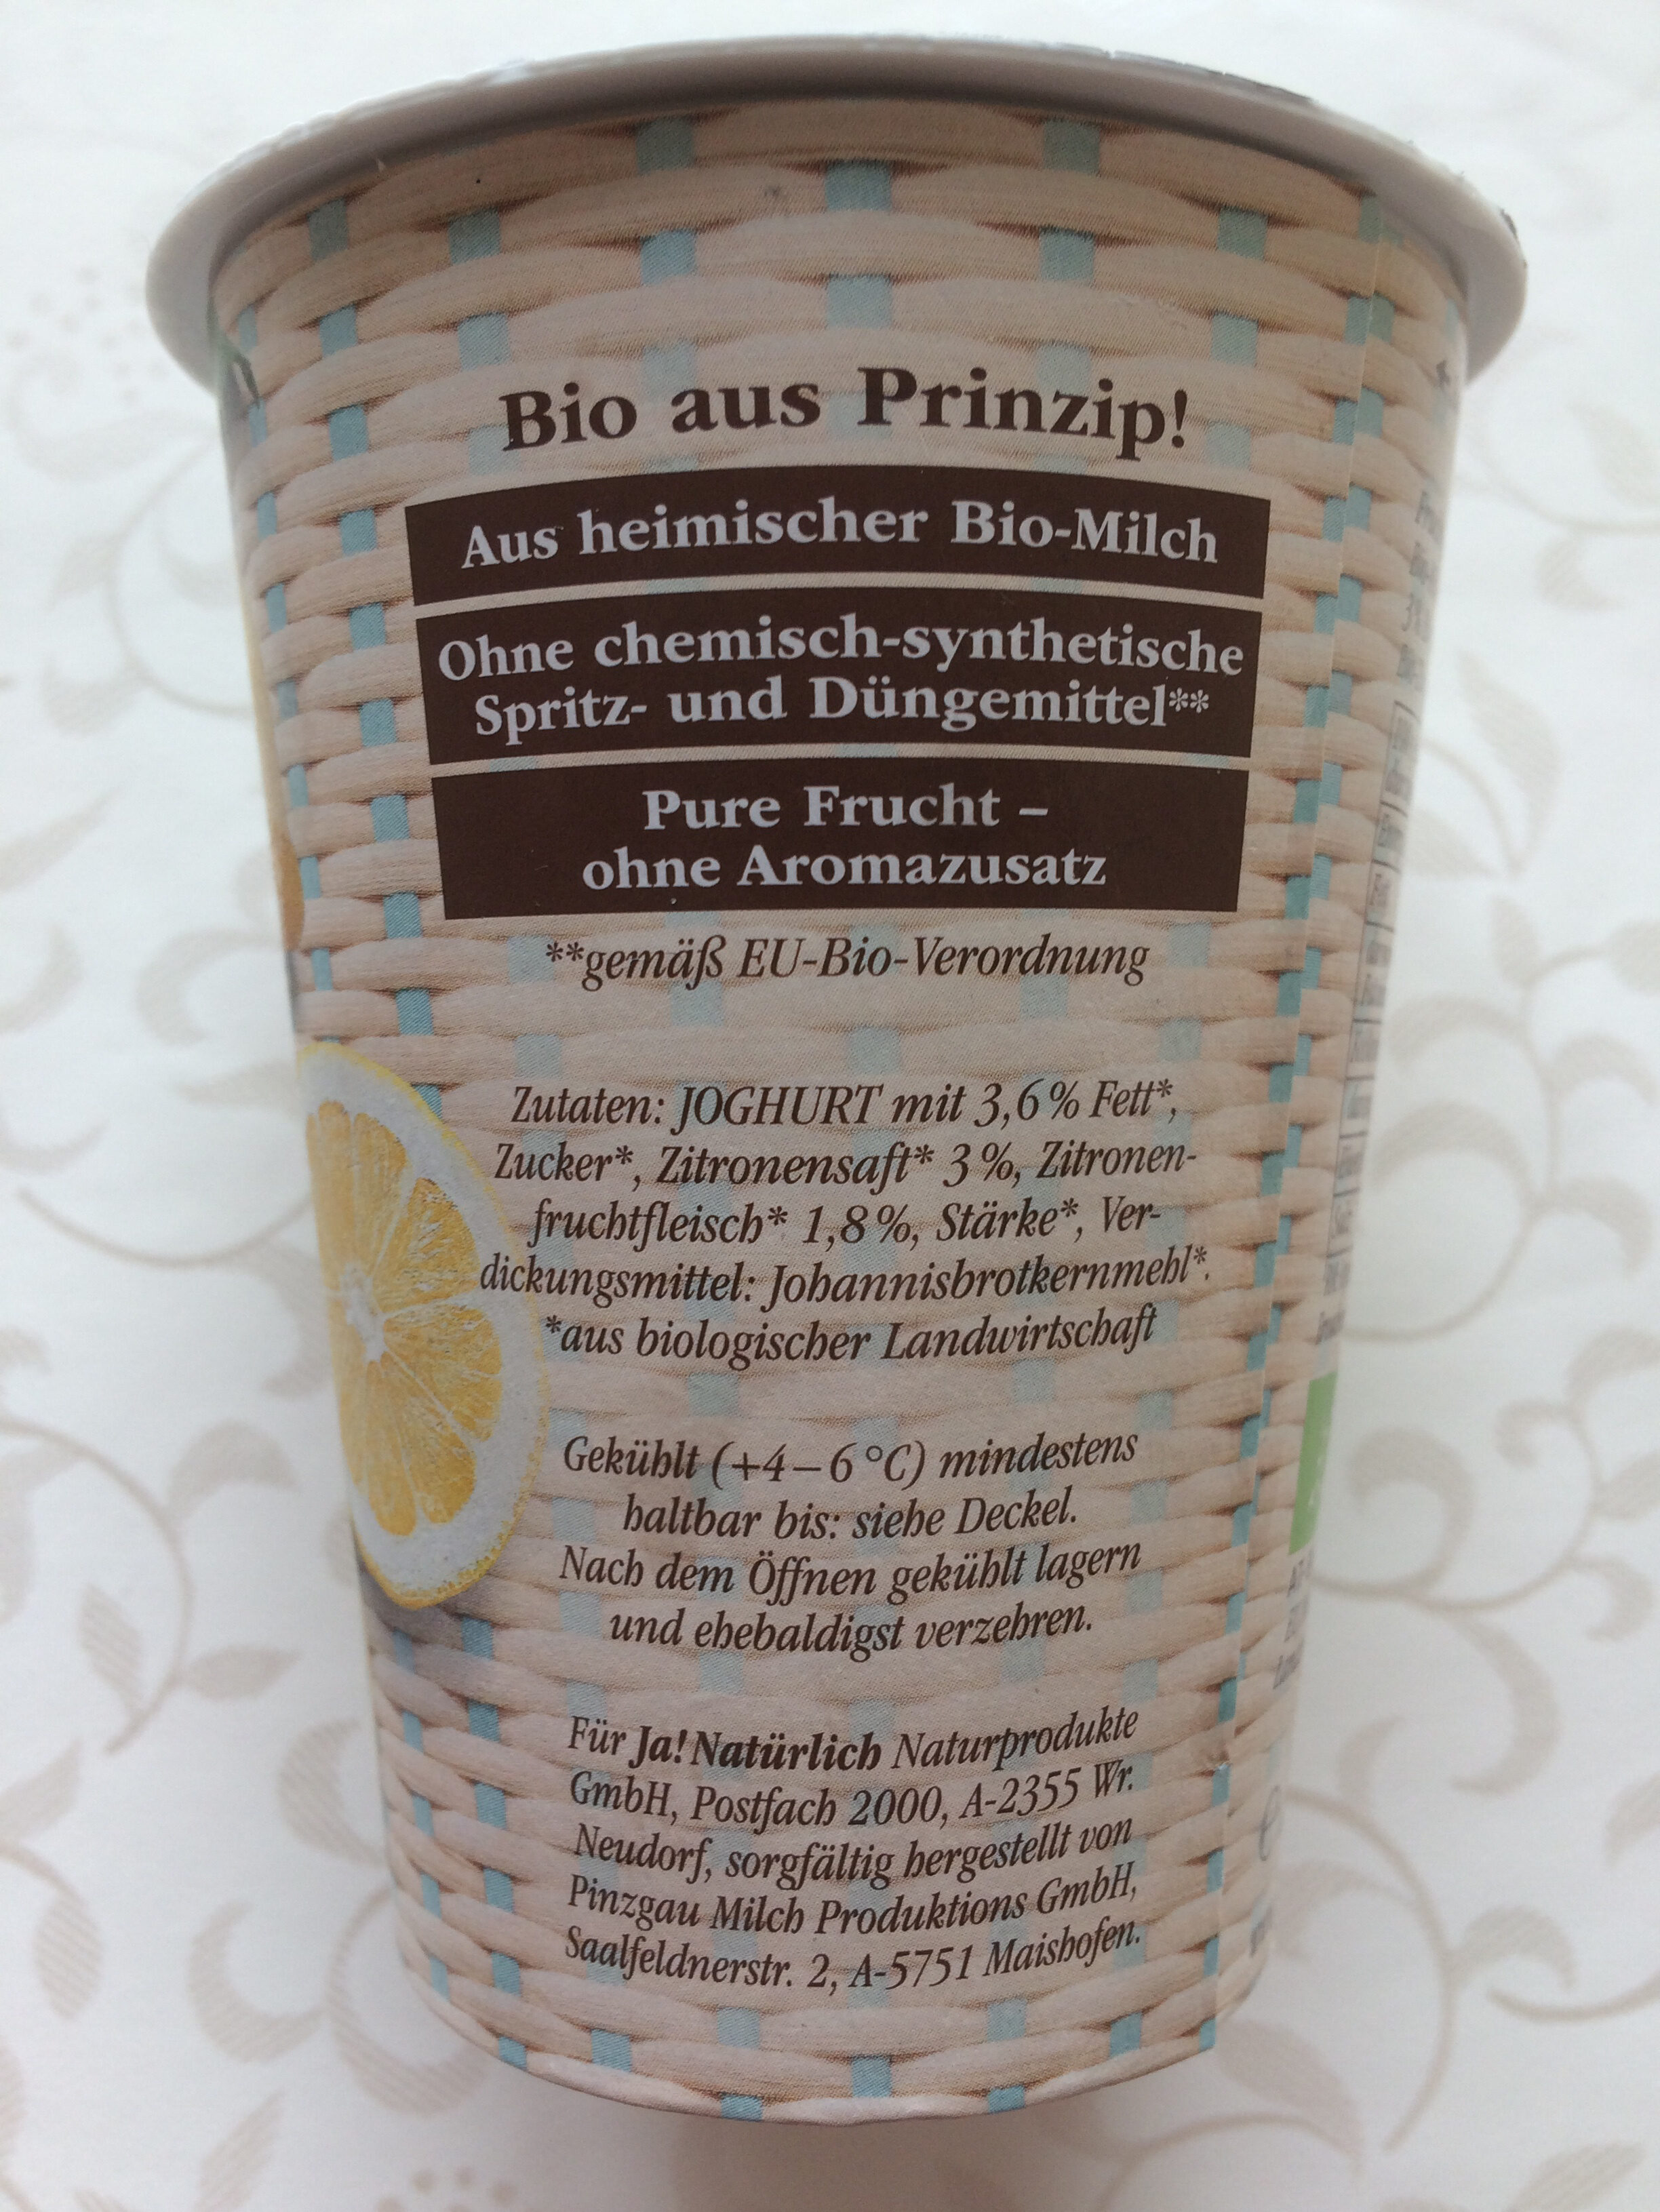 Sommerfrisch Bio-Zitrone - Ingredients - de